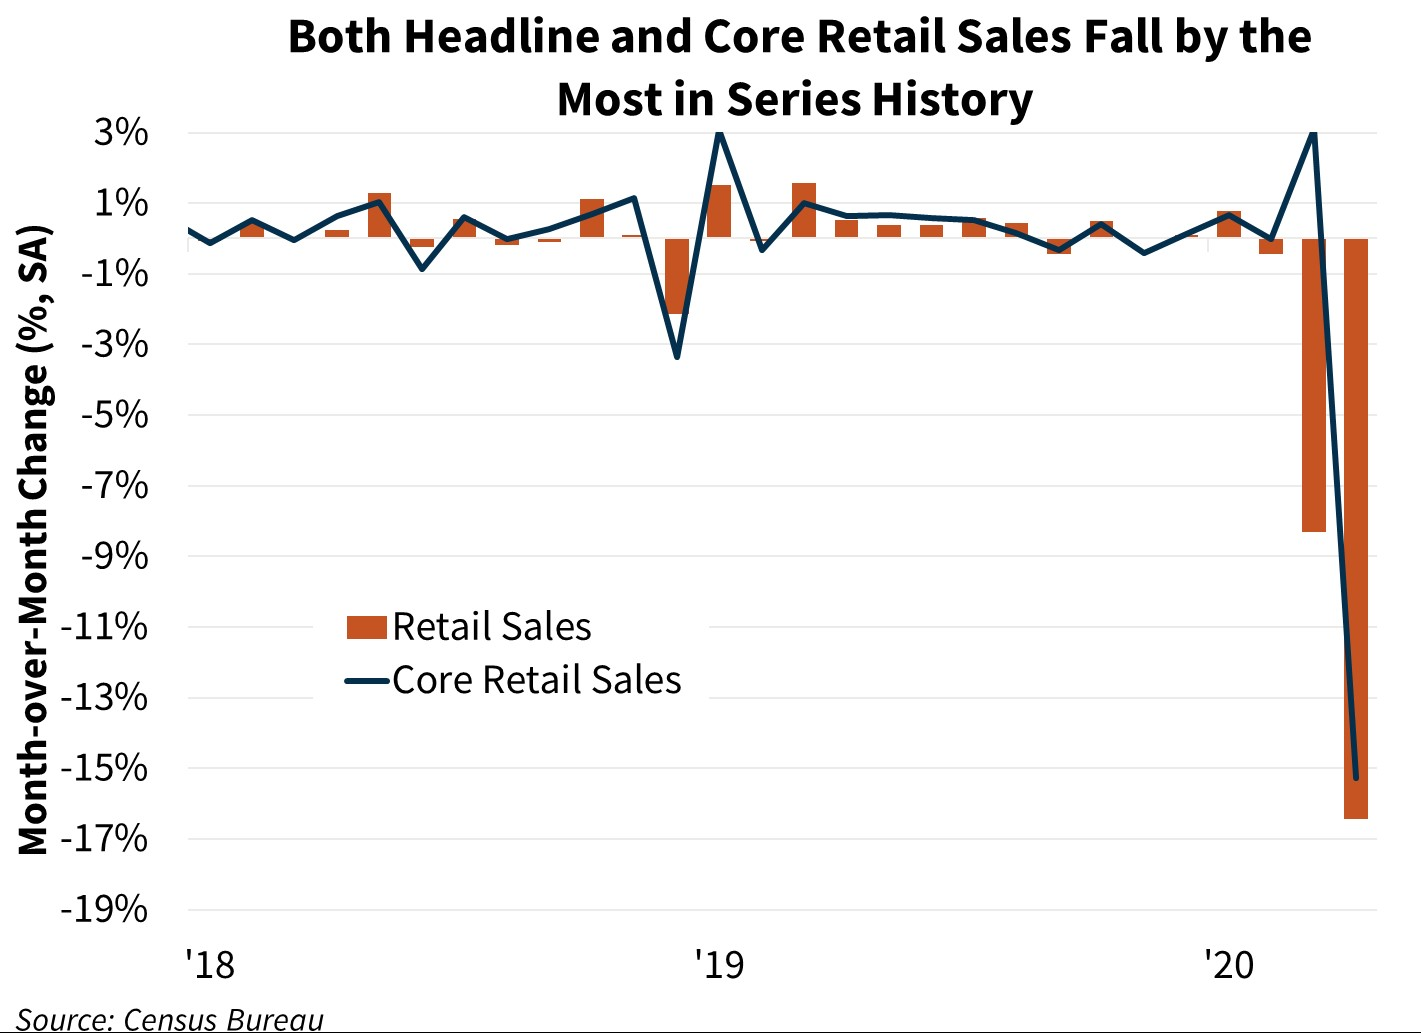 Both Headline and Core Retail Sales Fall by the Most in Series History